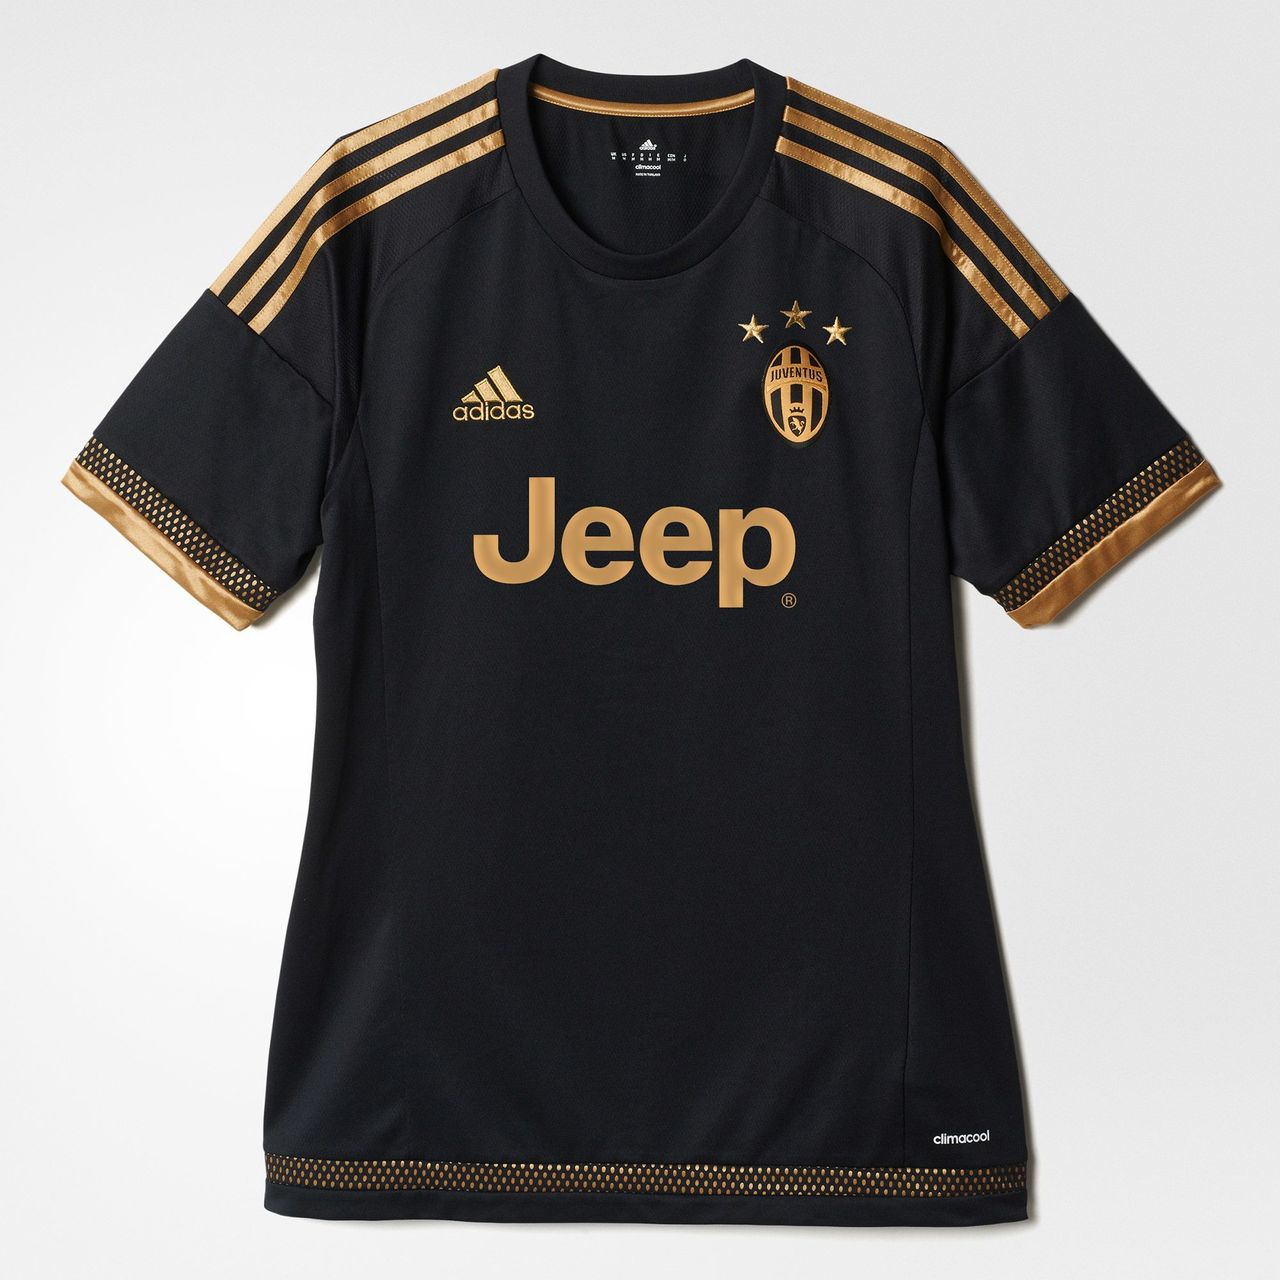 0b80ee9e495d9 ... Click to enlarge image juventus-2015-2016-adidas-third-football- ...